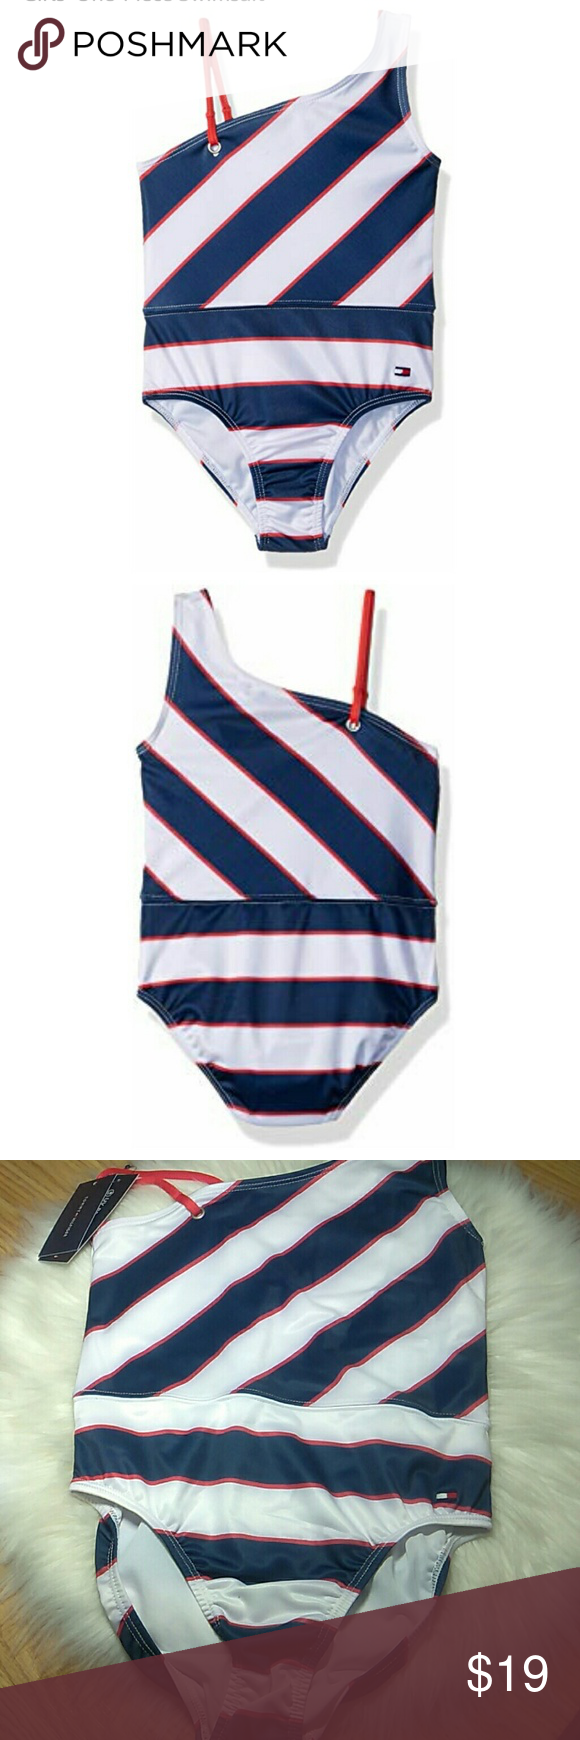 45e38b6726704 NEW TOMMY HILFIGER SWIMSUIT Brand new Tommy Hilfiger girls one piece  swimsuit UV protection 50 +